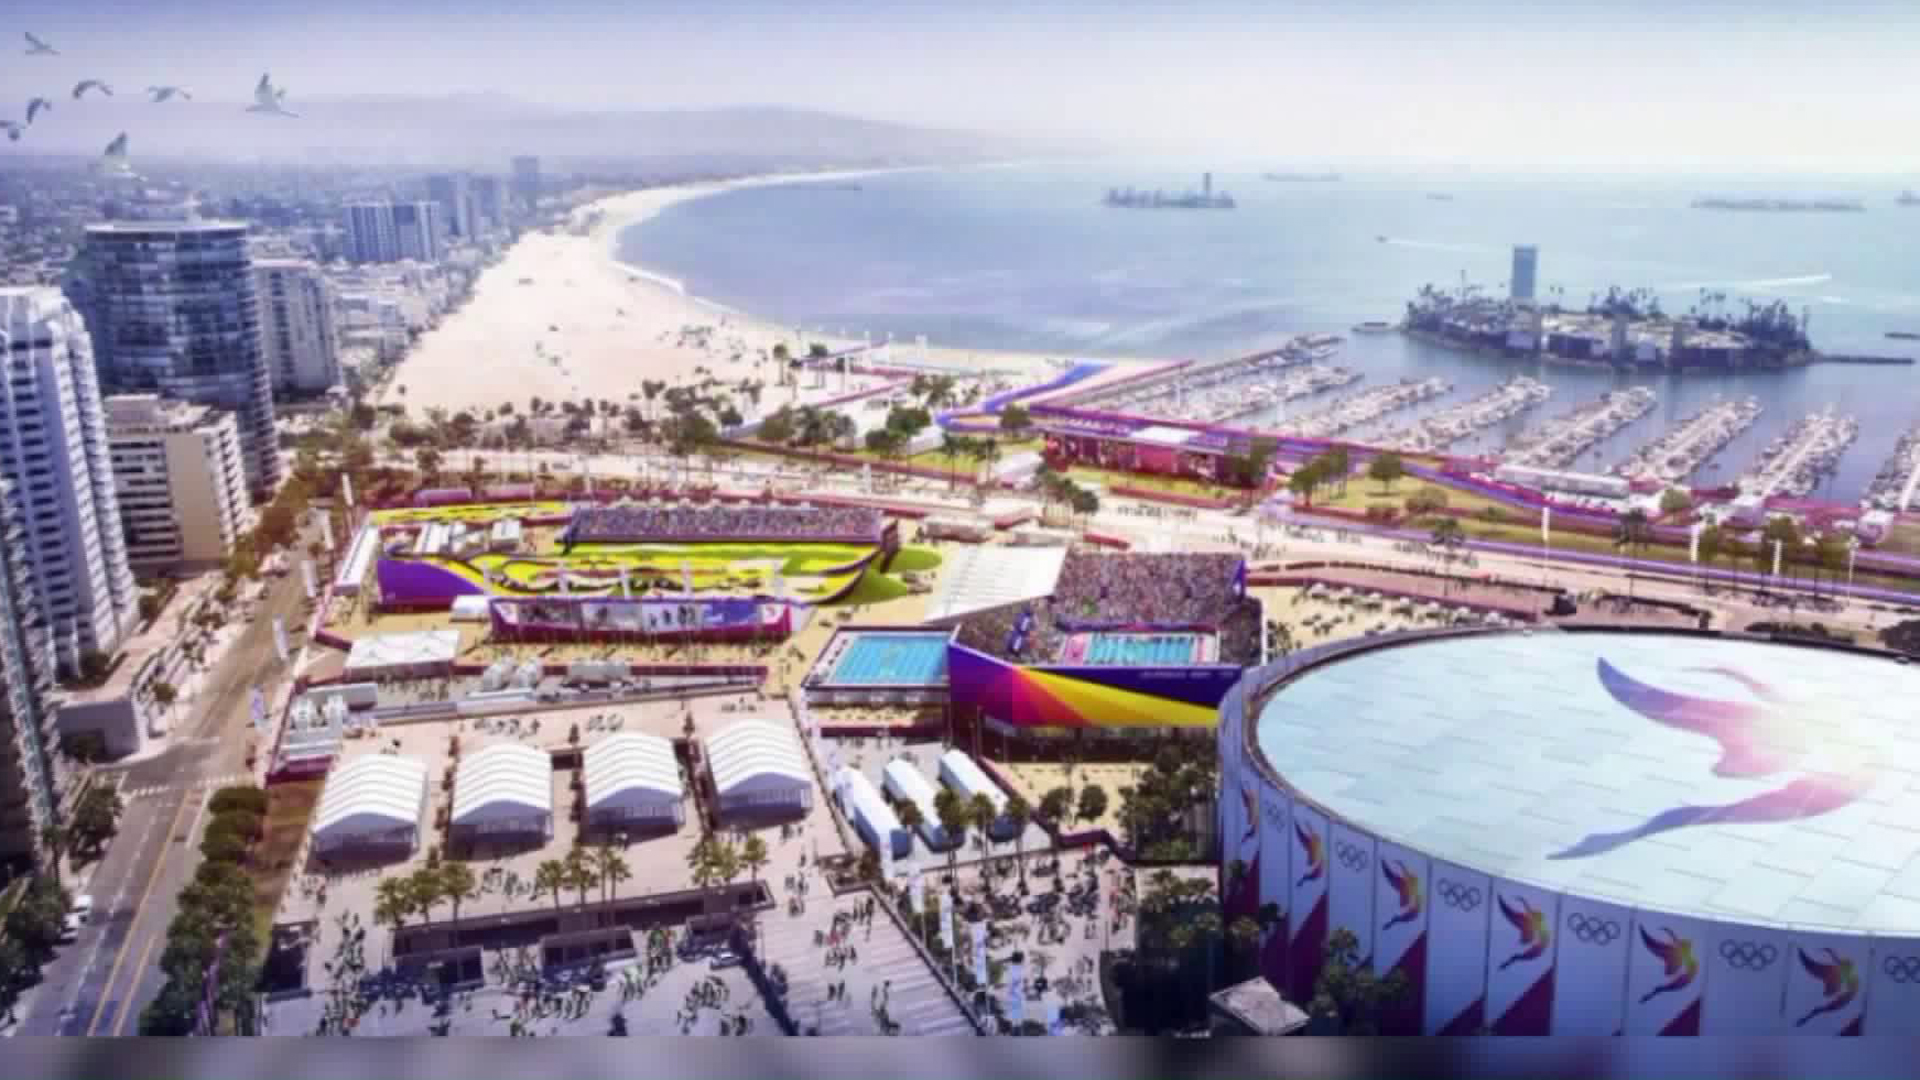 An artist's rendering shows what Long Beach could look like by 2028.